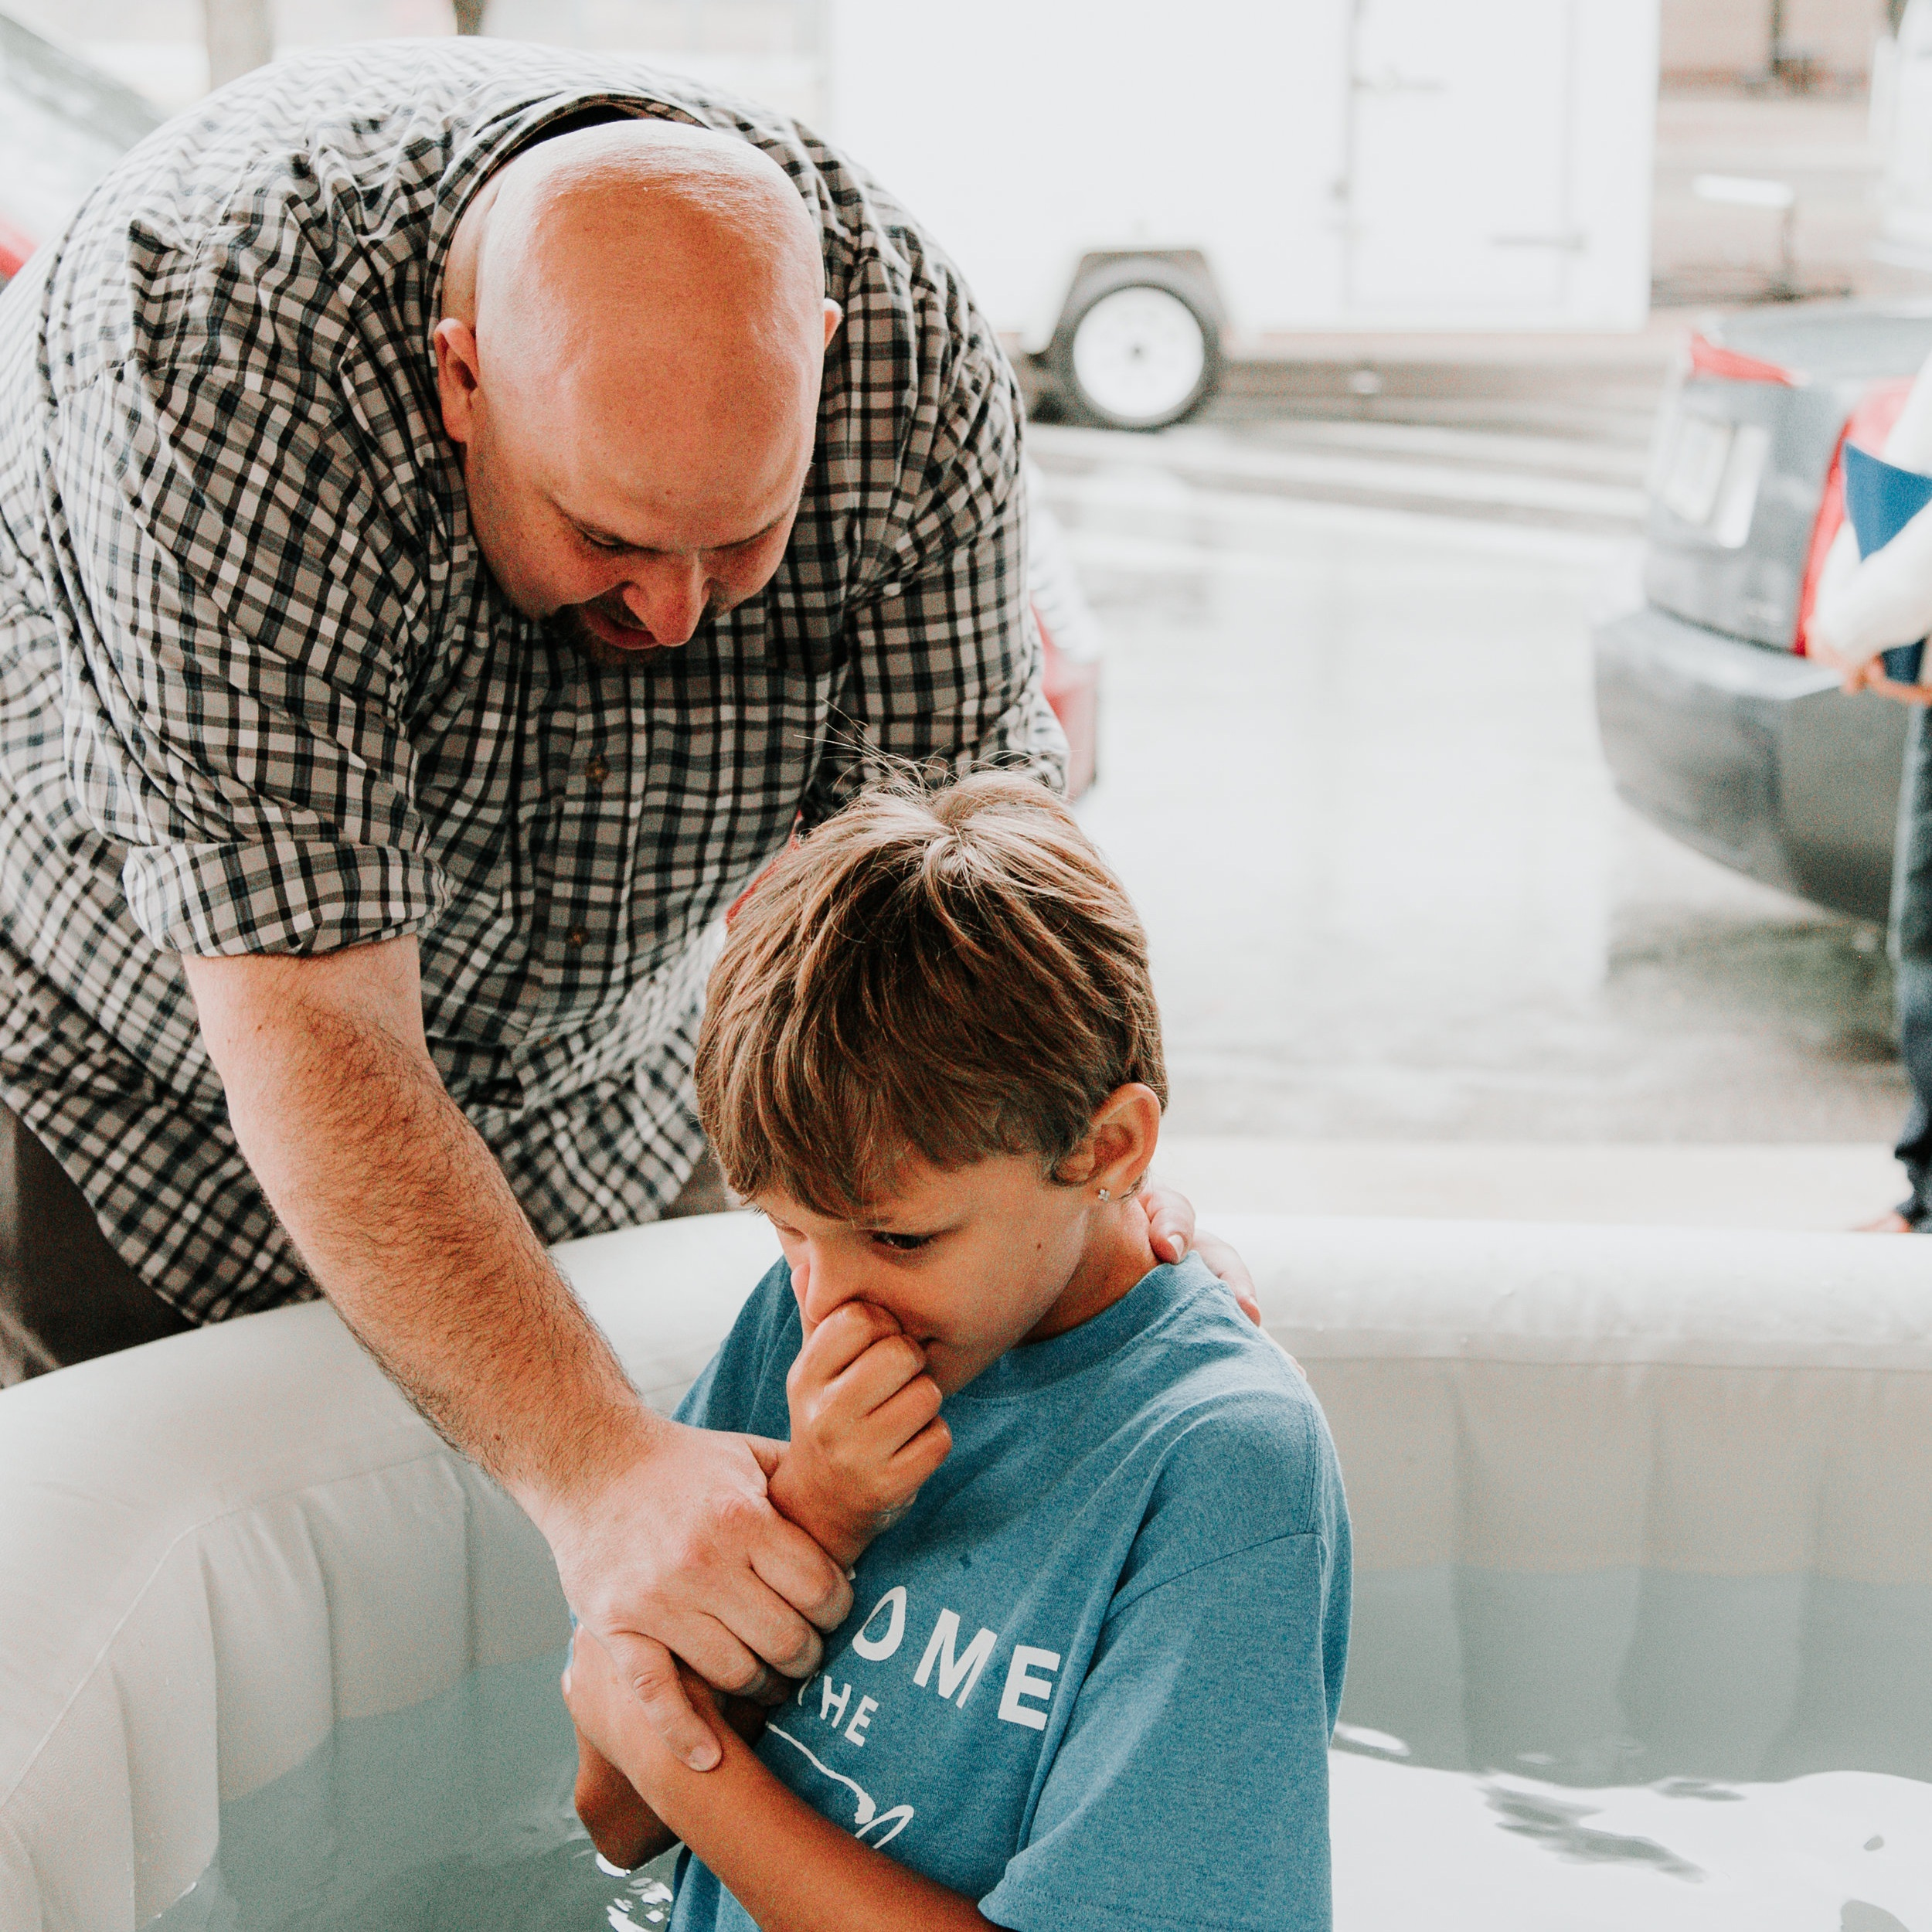 Baptisms - Baptism is your opportunity to make a public declaration of your faith in Jesus! And we want to celebrate with you!